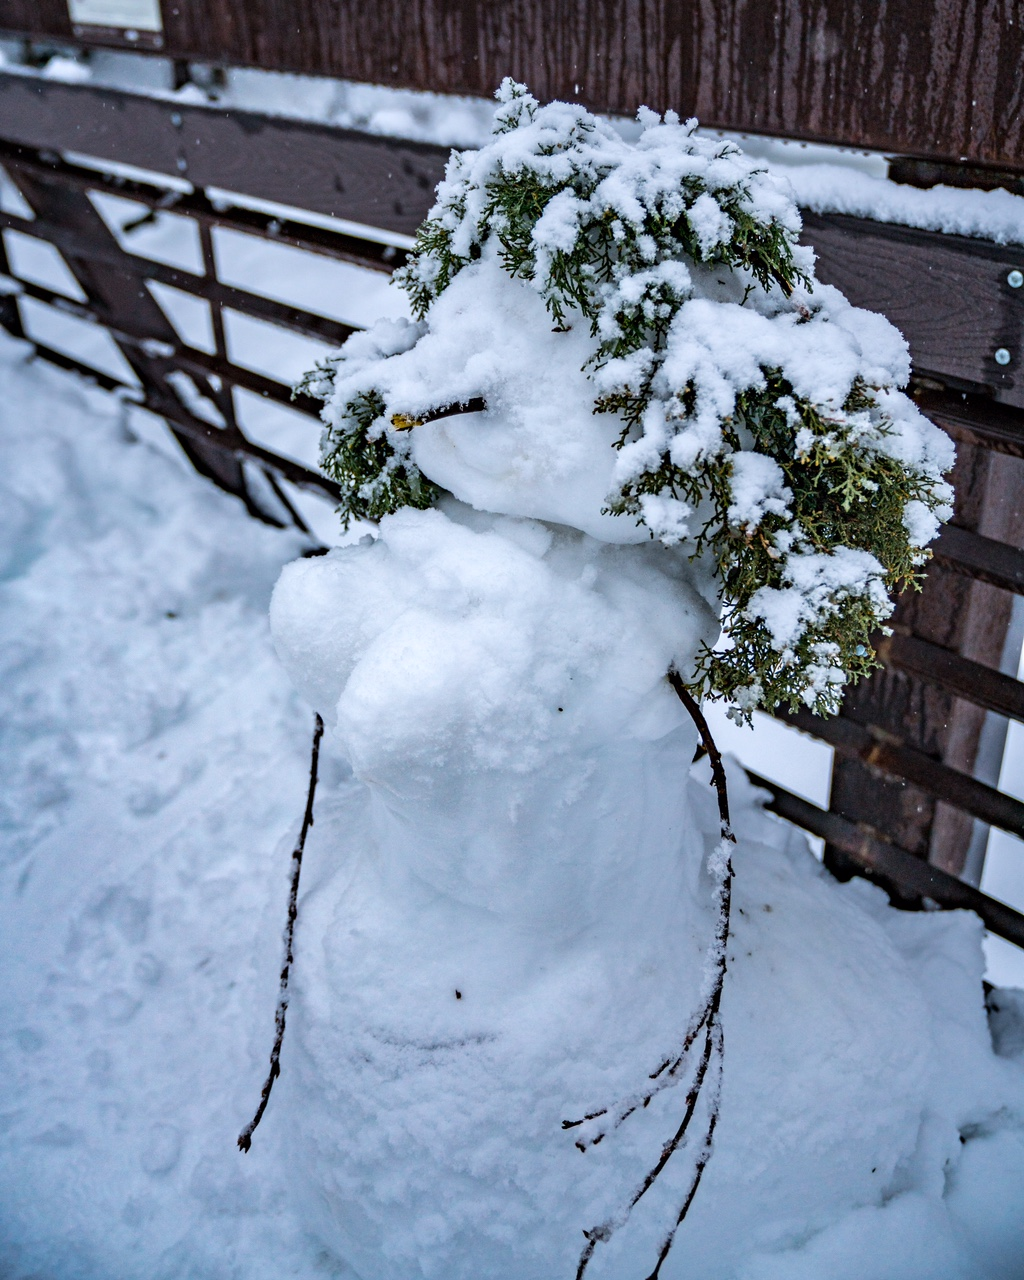 A humorous snowman in Bend, Oregon